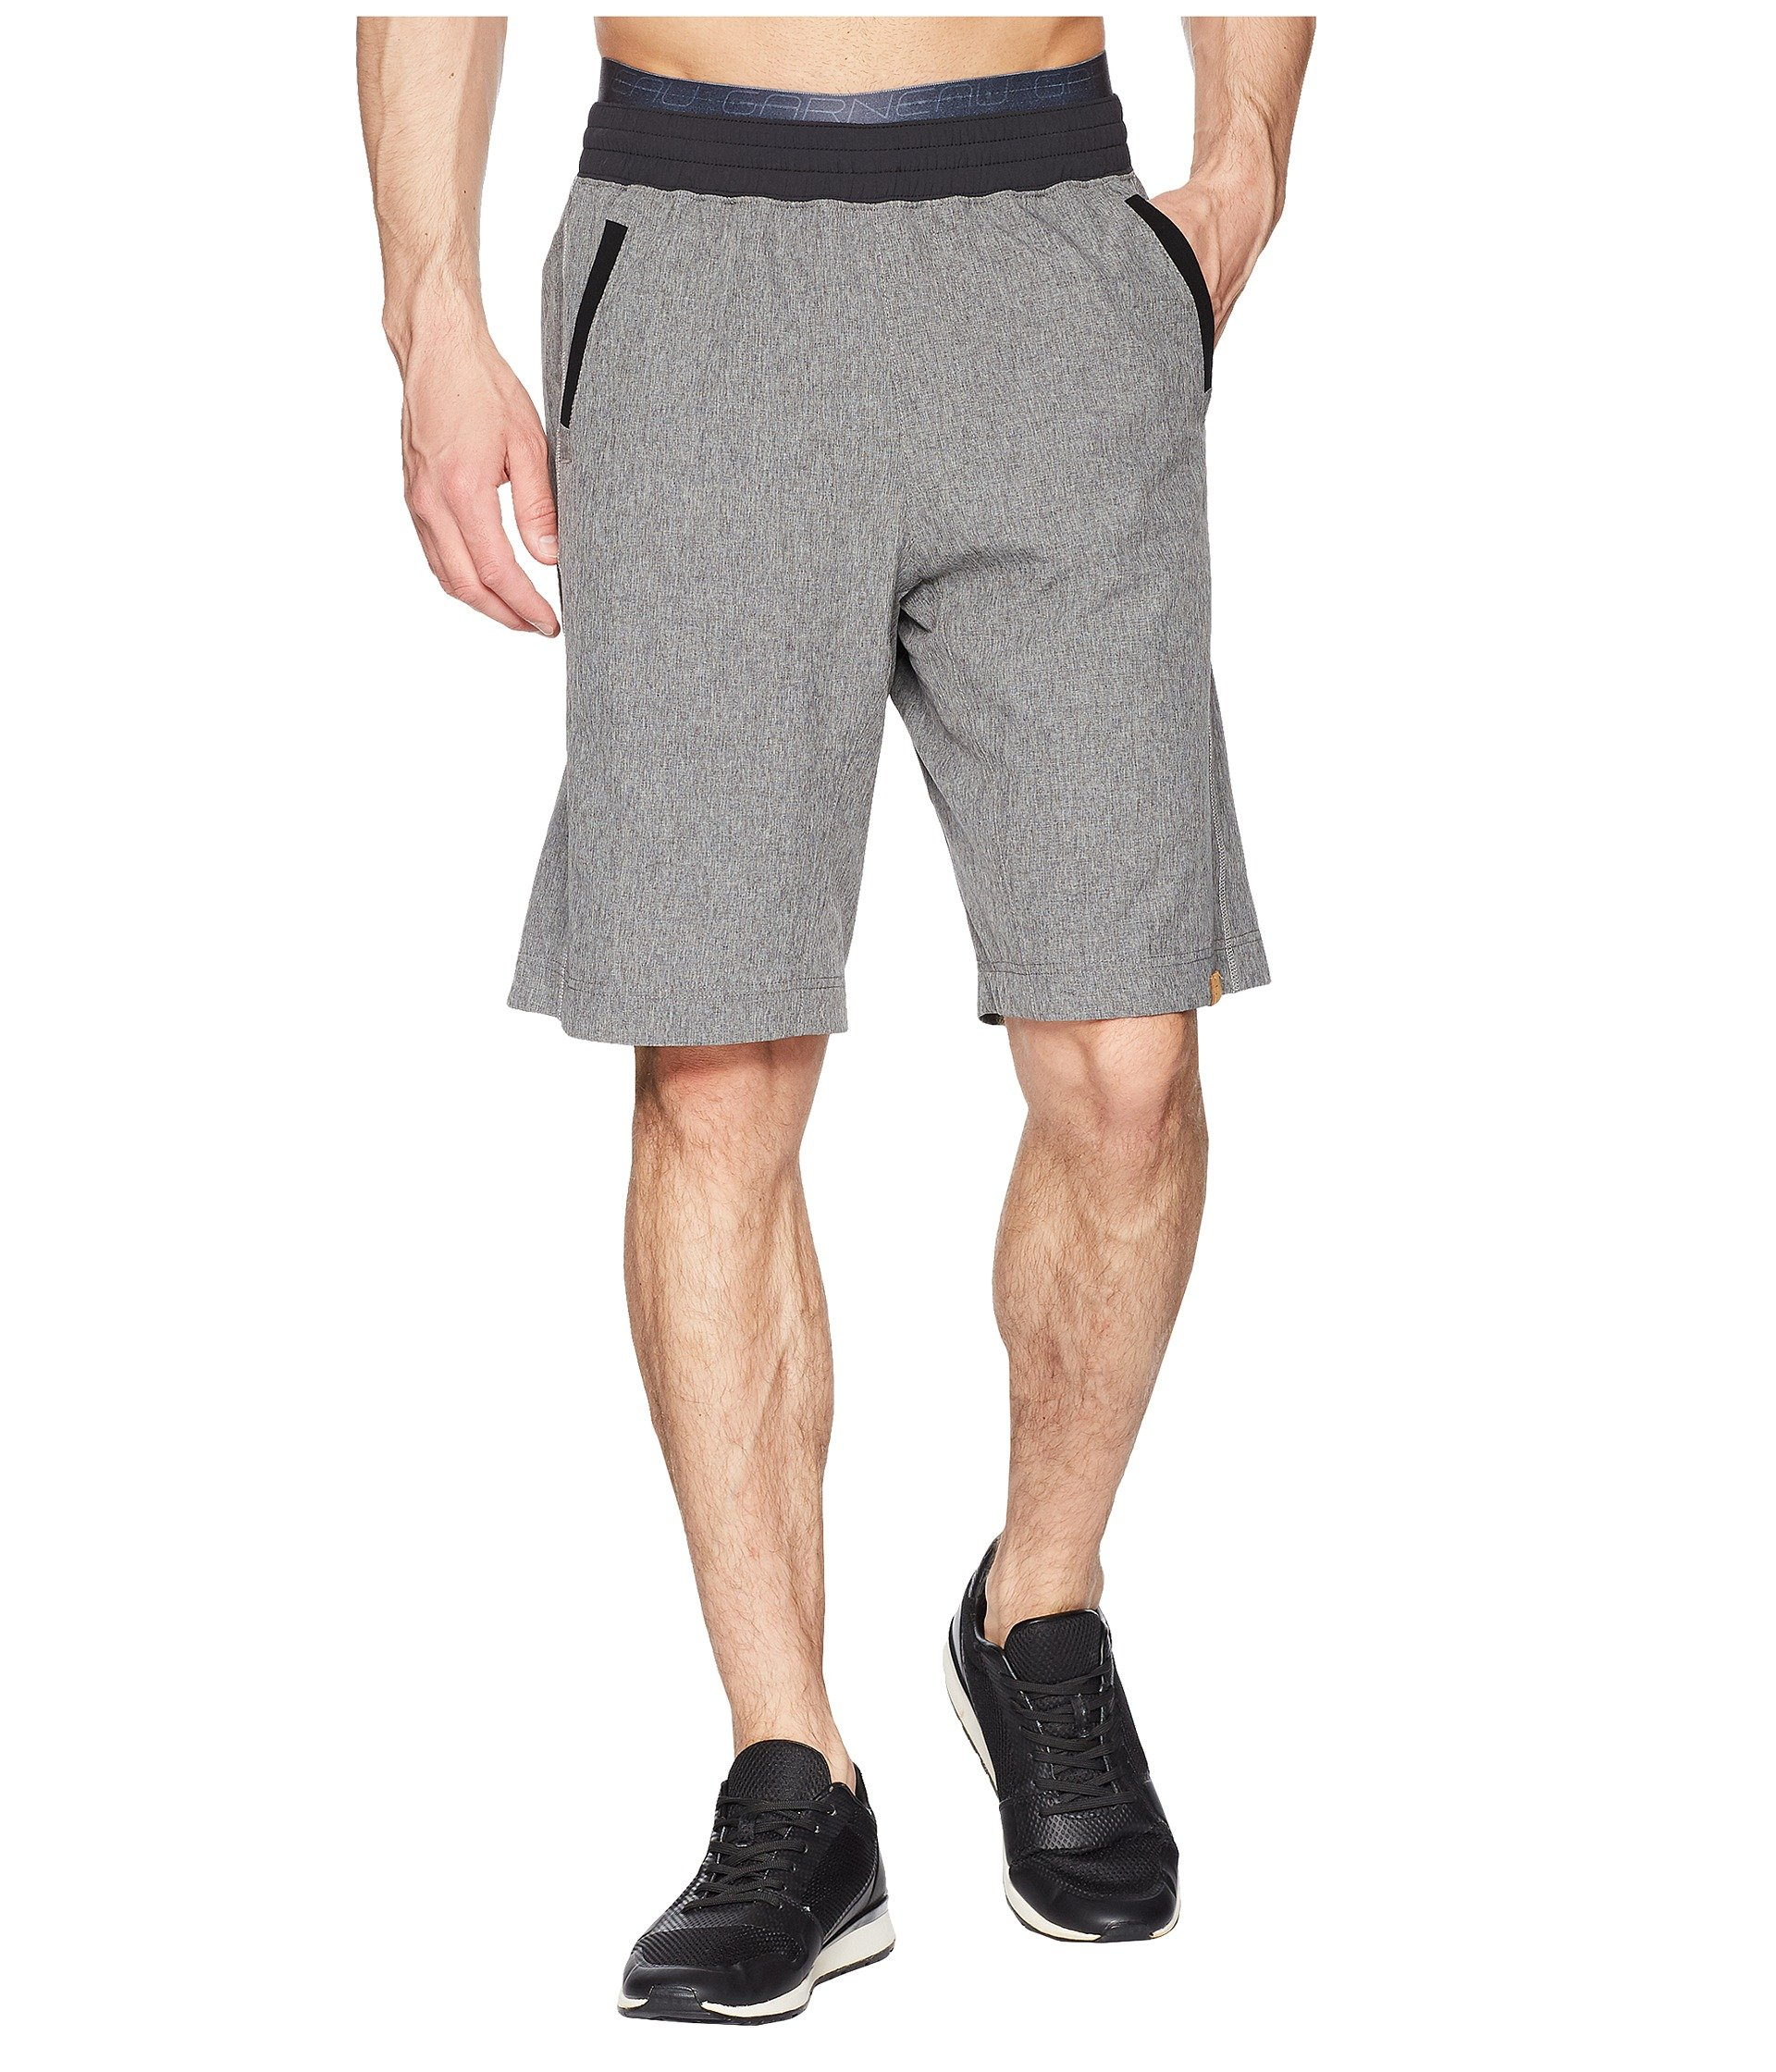 gray Shorts Black Urban Louis Garneau z6qxvUnZw